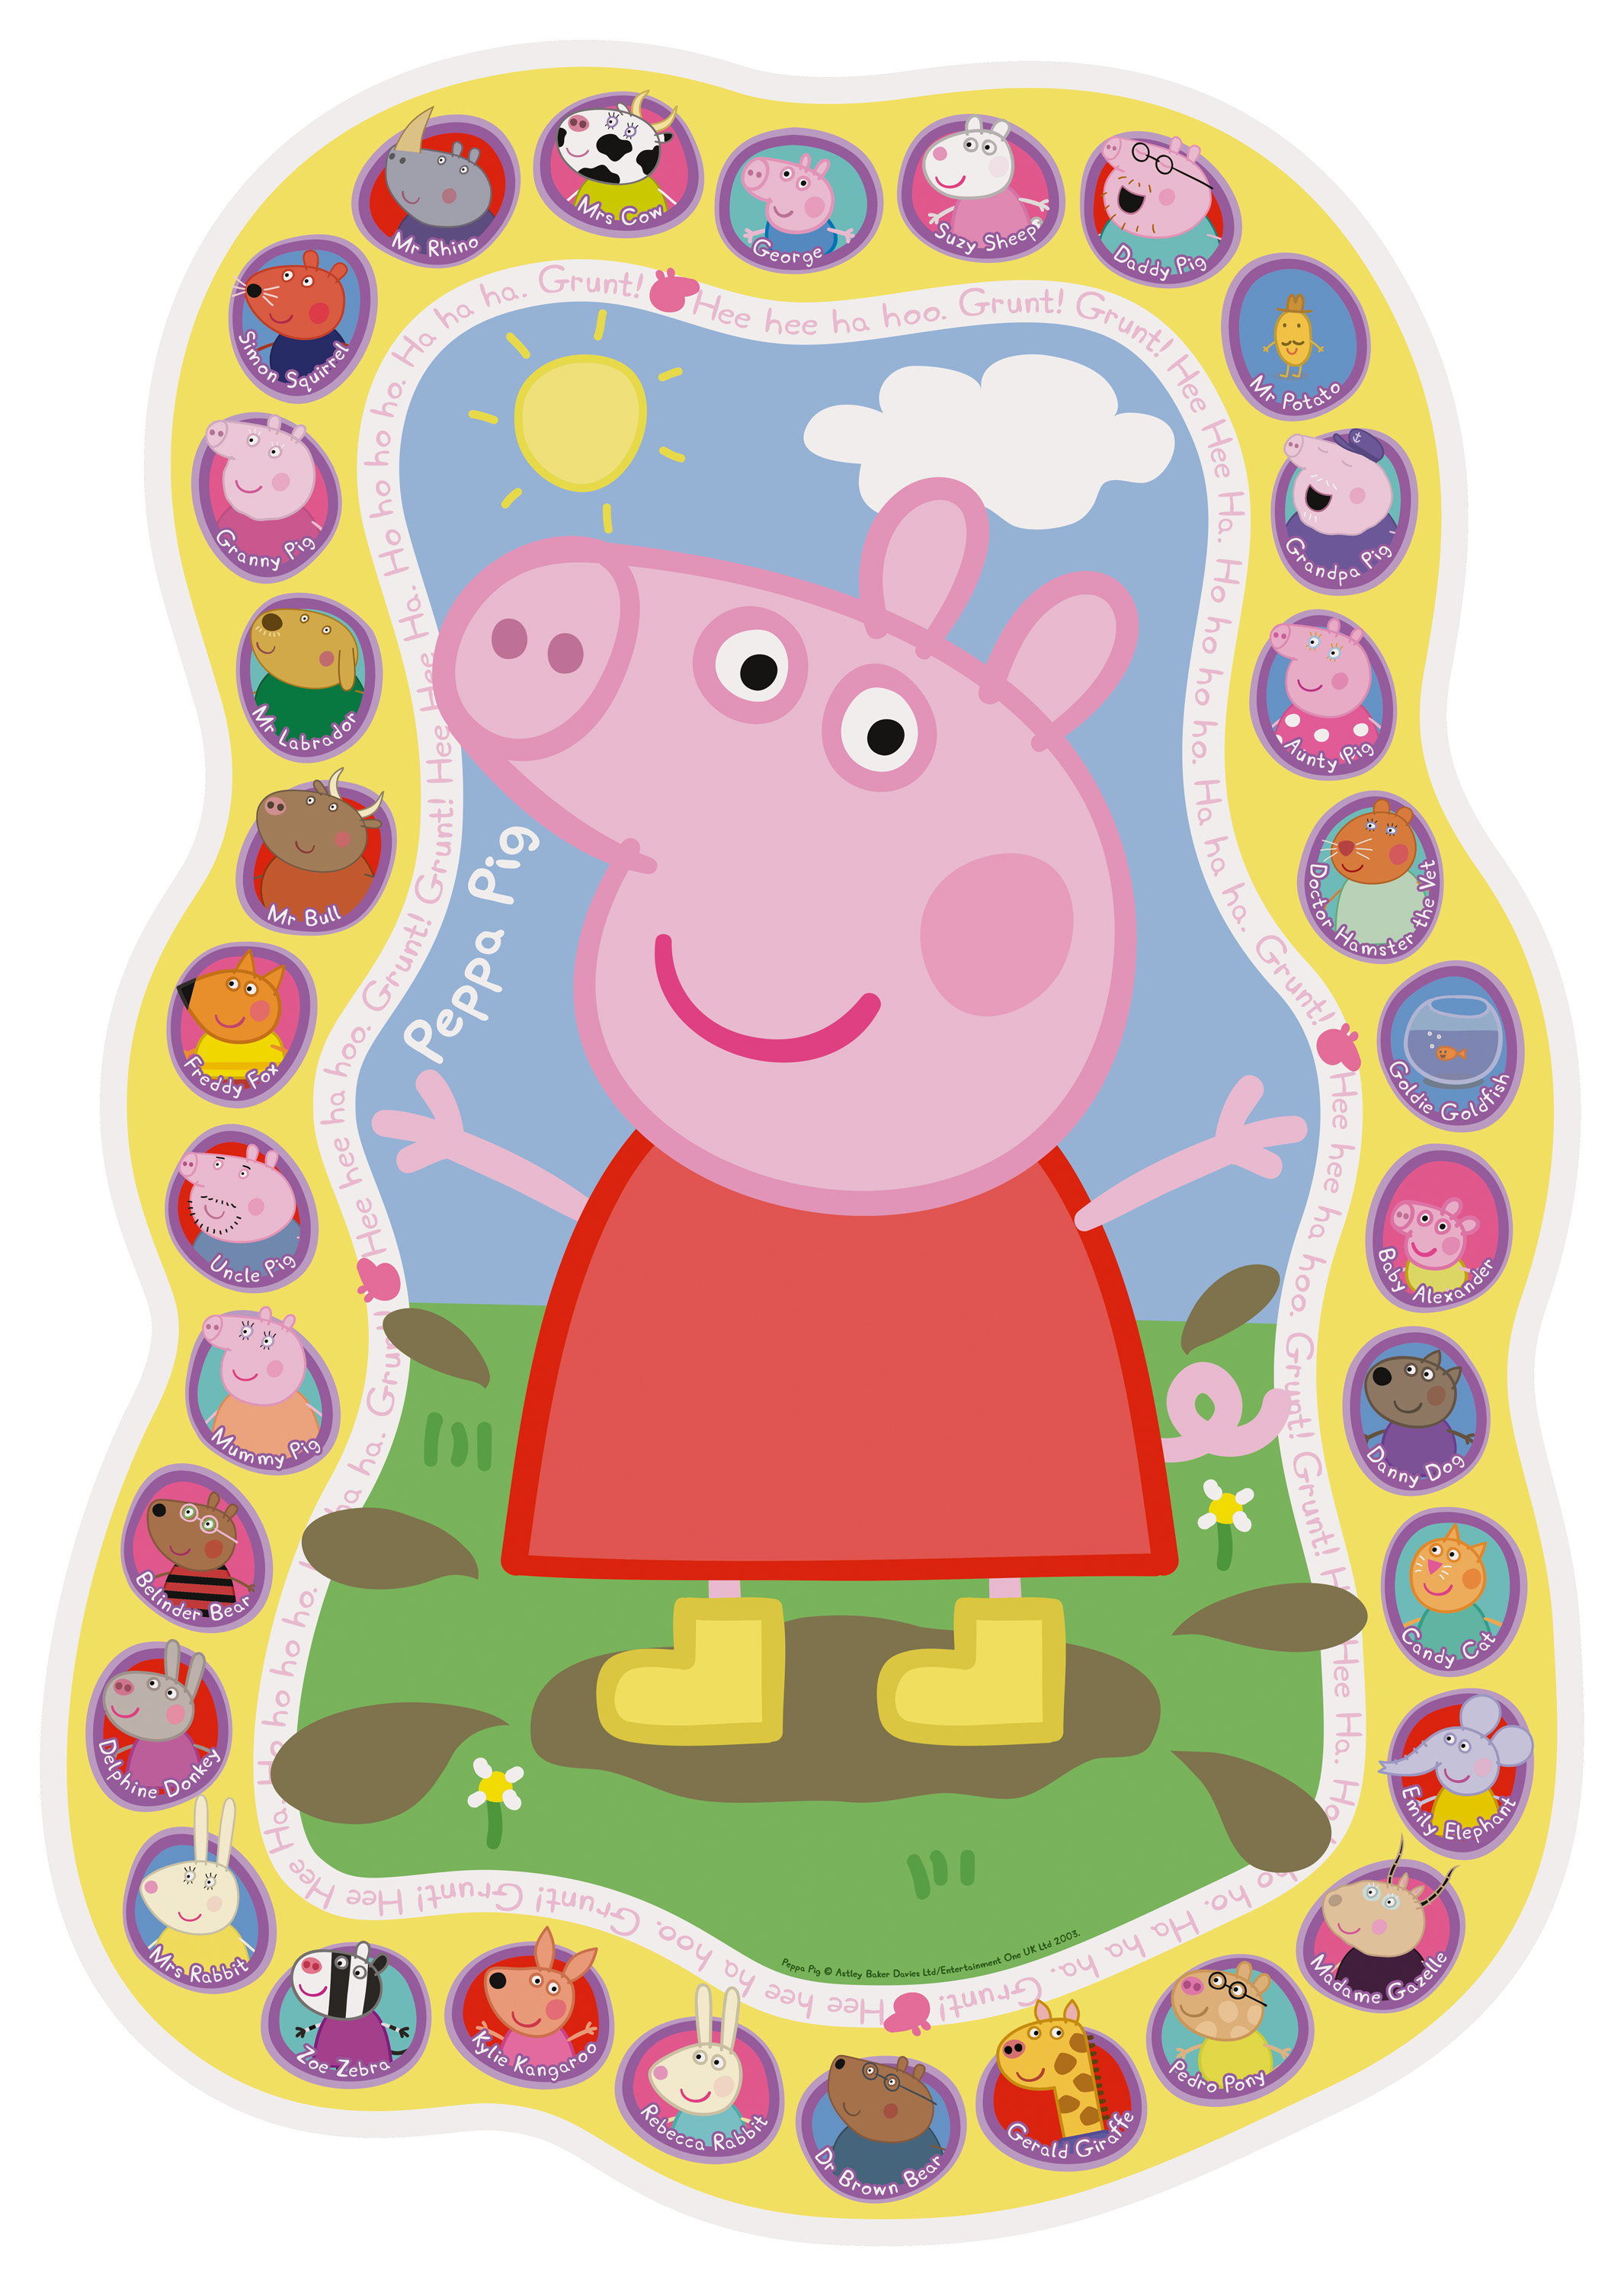 Ravensburger 05545 Peppa Pig Family And Friends 24